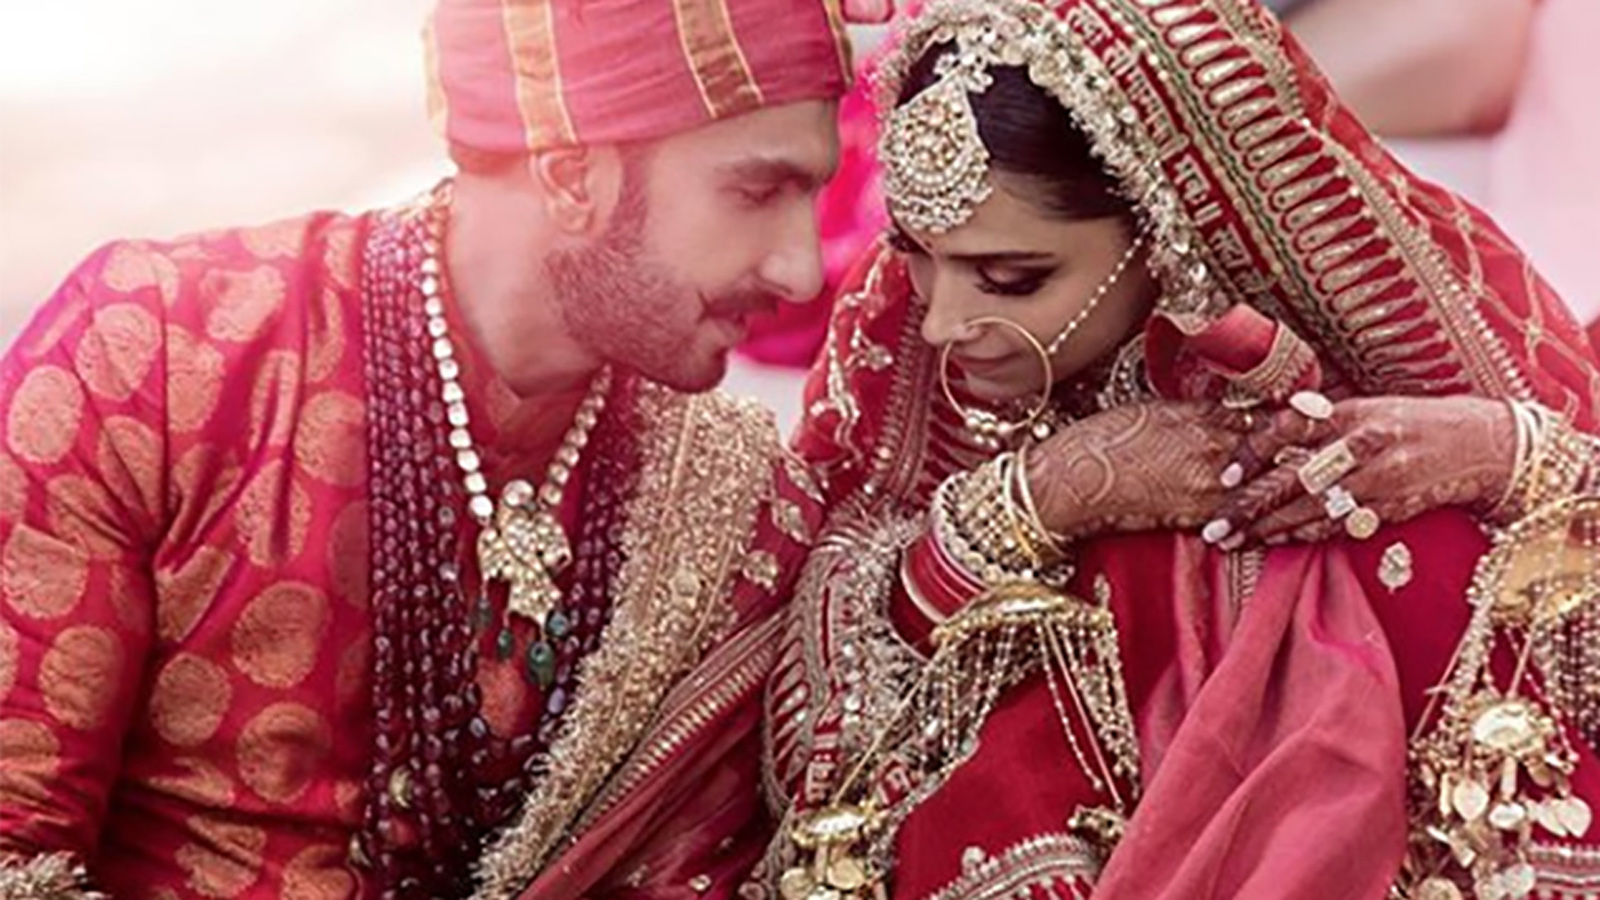 Indian Weddings For The Super Rich Beyonce Couture And Palaces Cnn Style